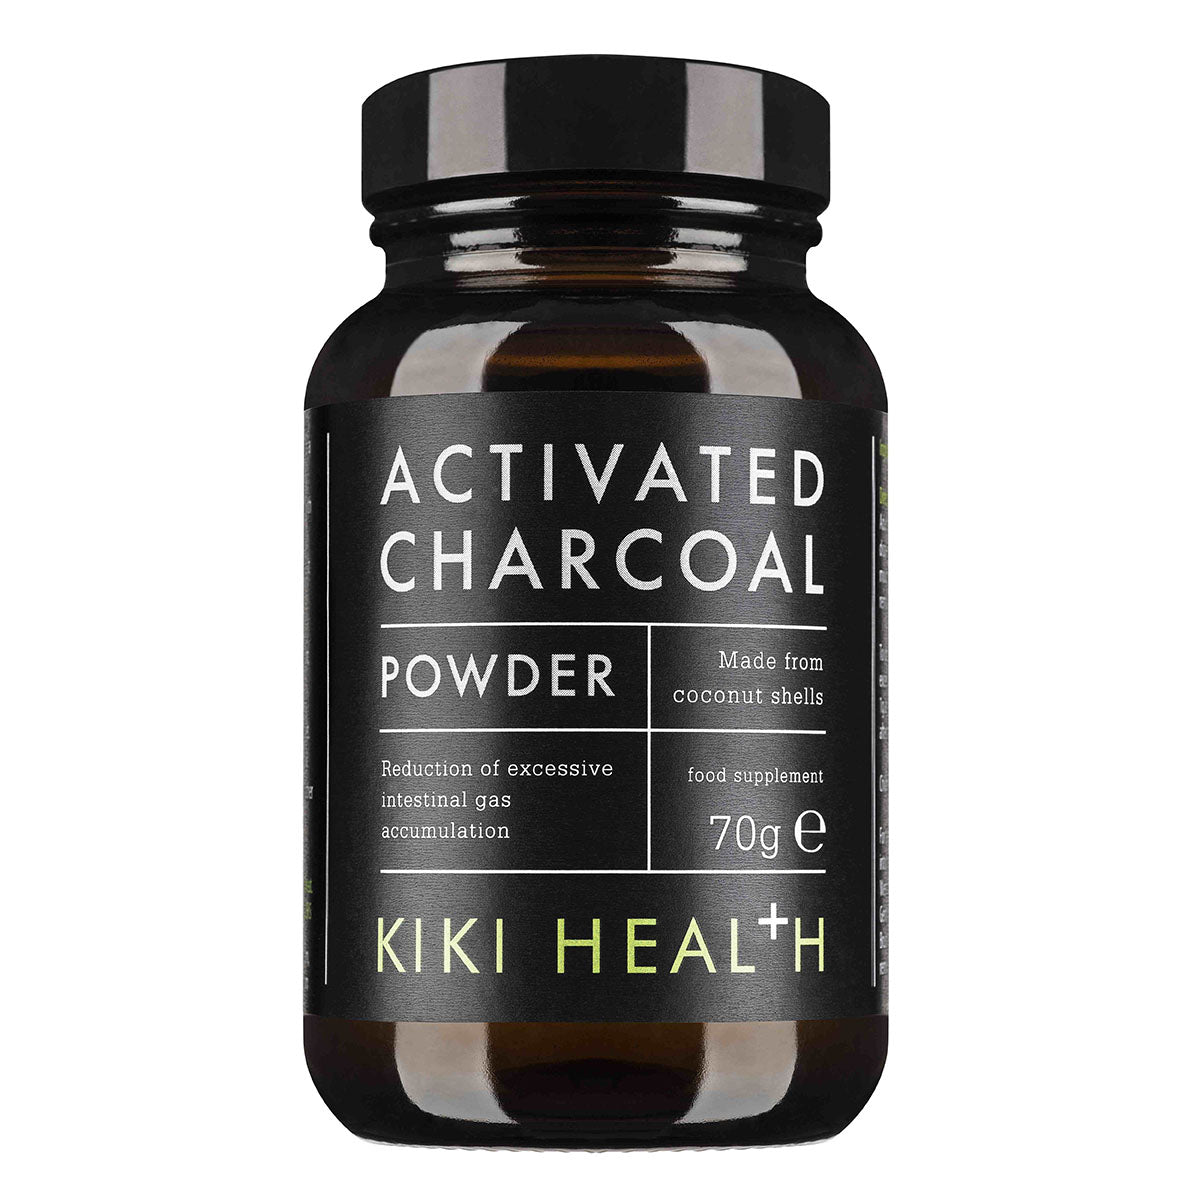 Activated Charcoal Powder (70g)